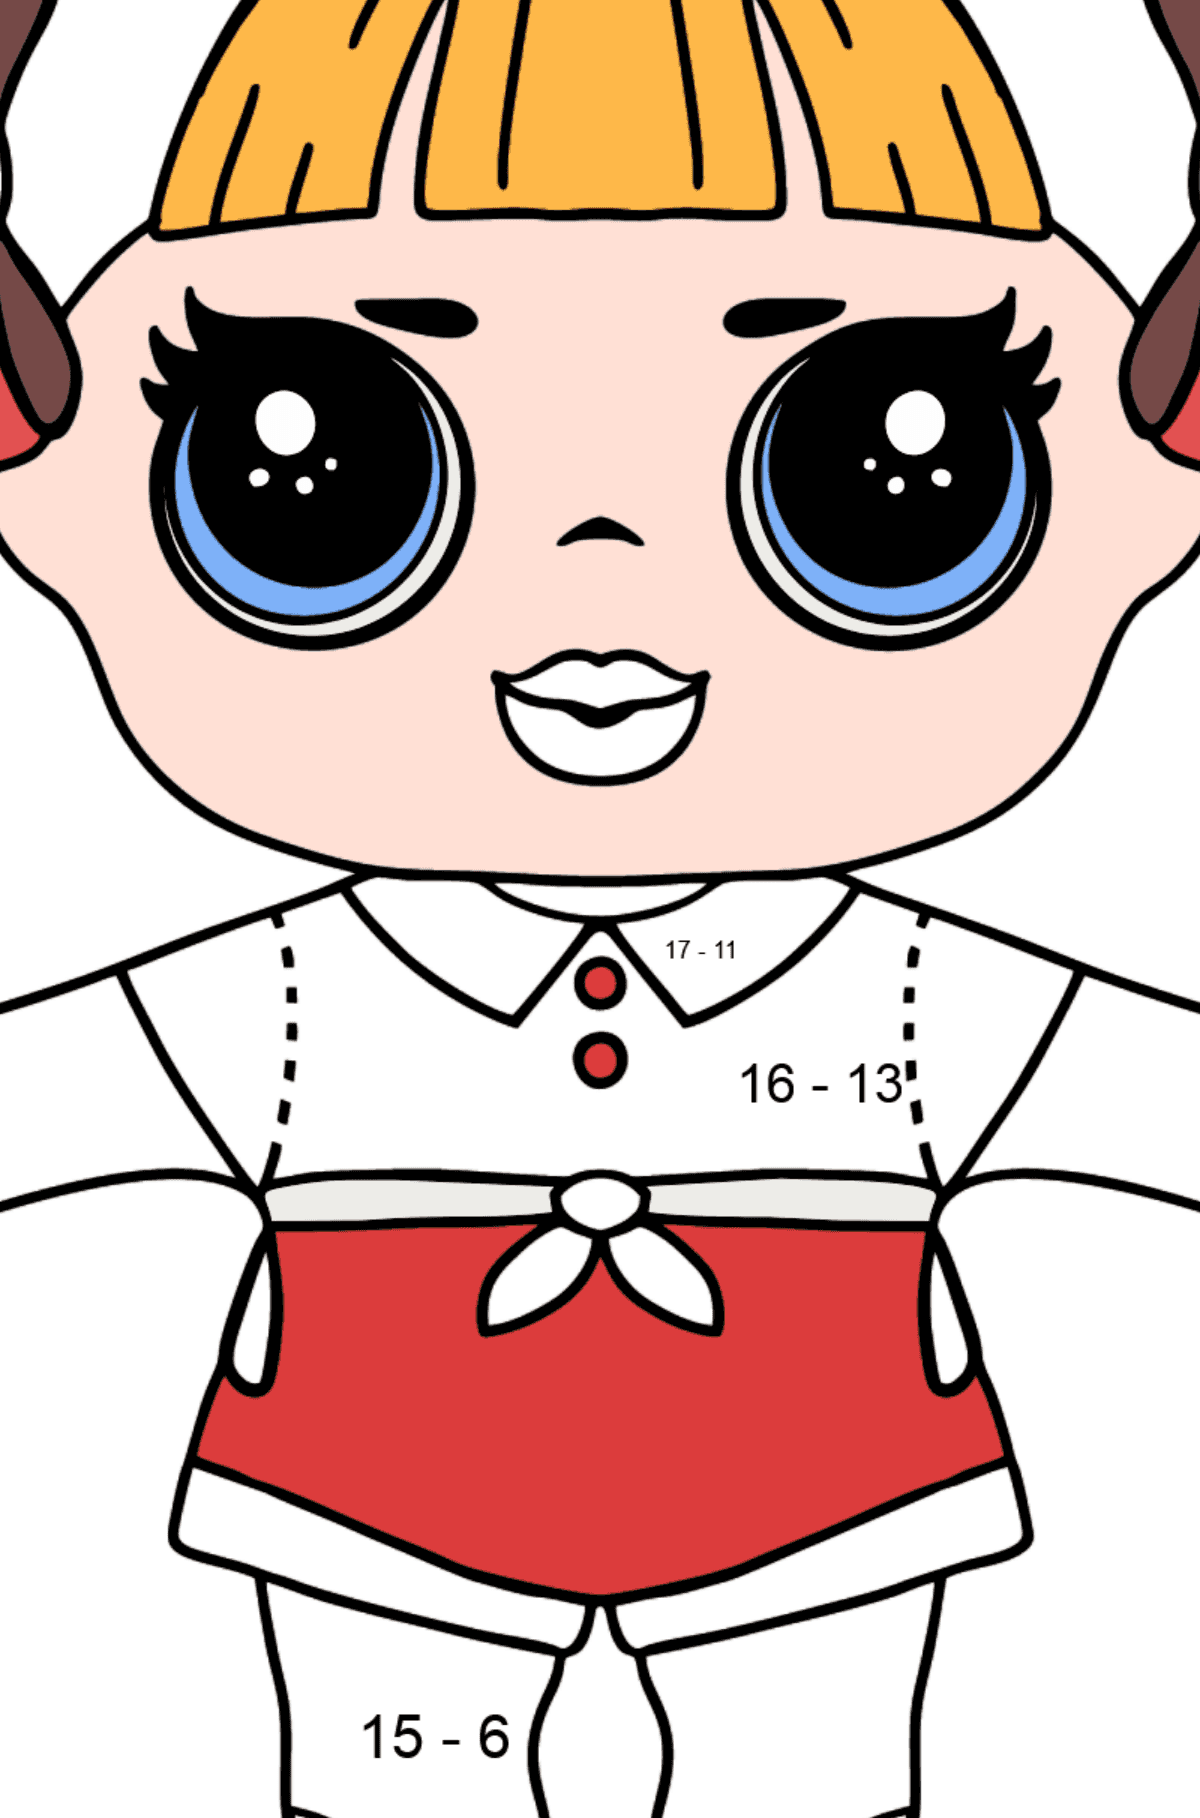 L.O.L. Surprise Doll Cheer Captain - Math Coloring - Subtraction for Kids